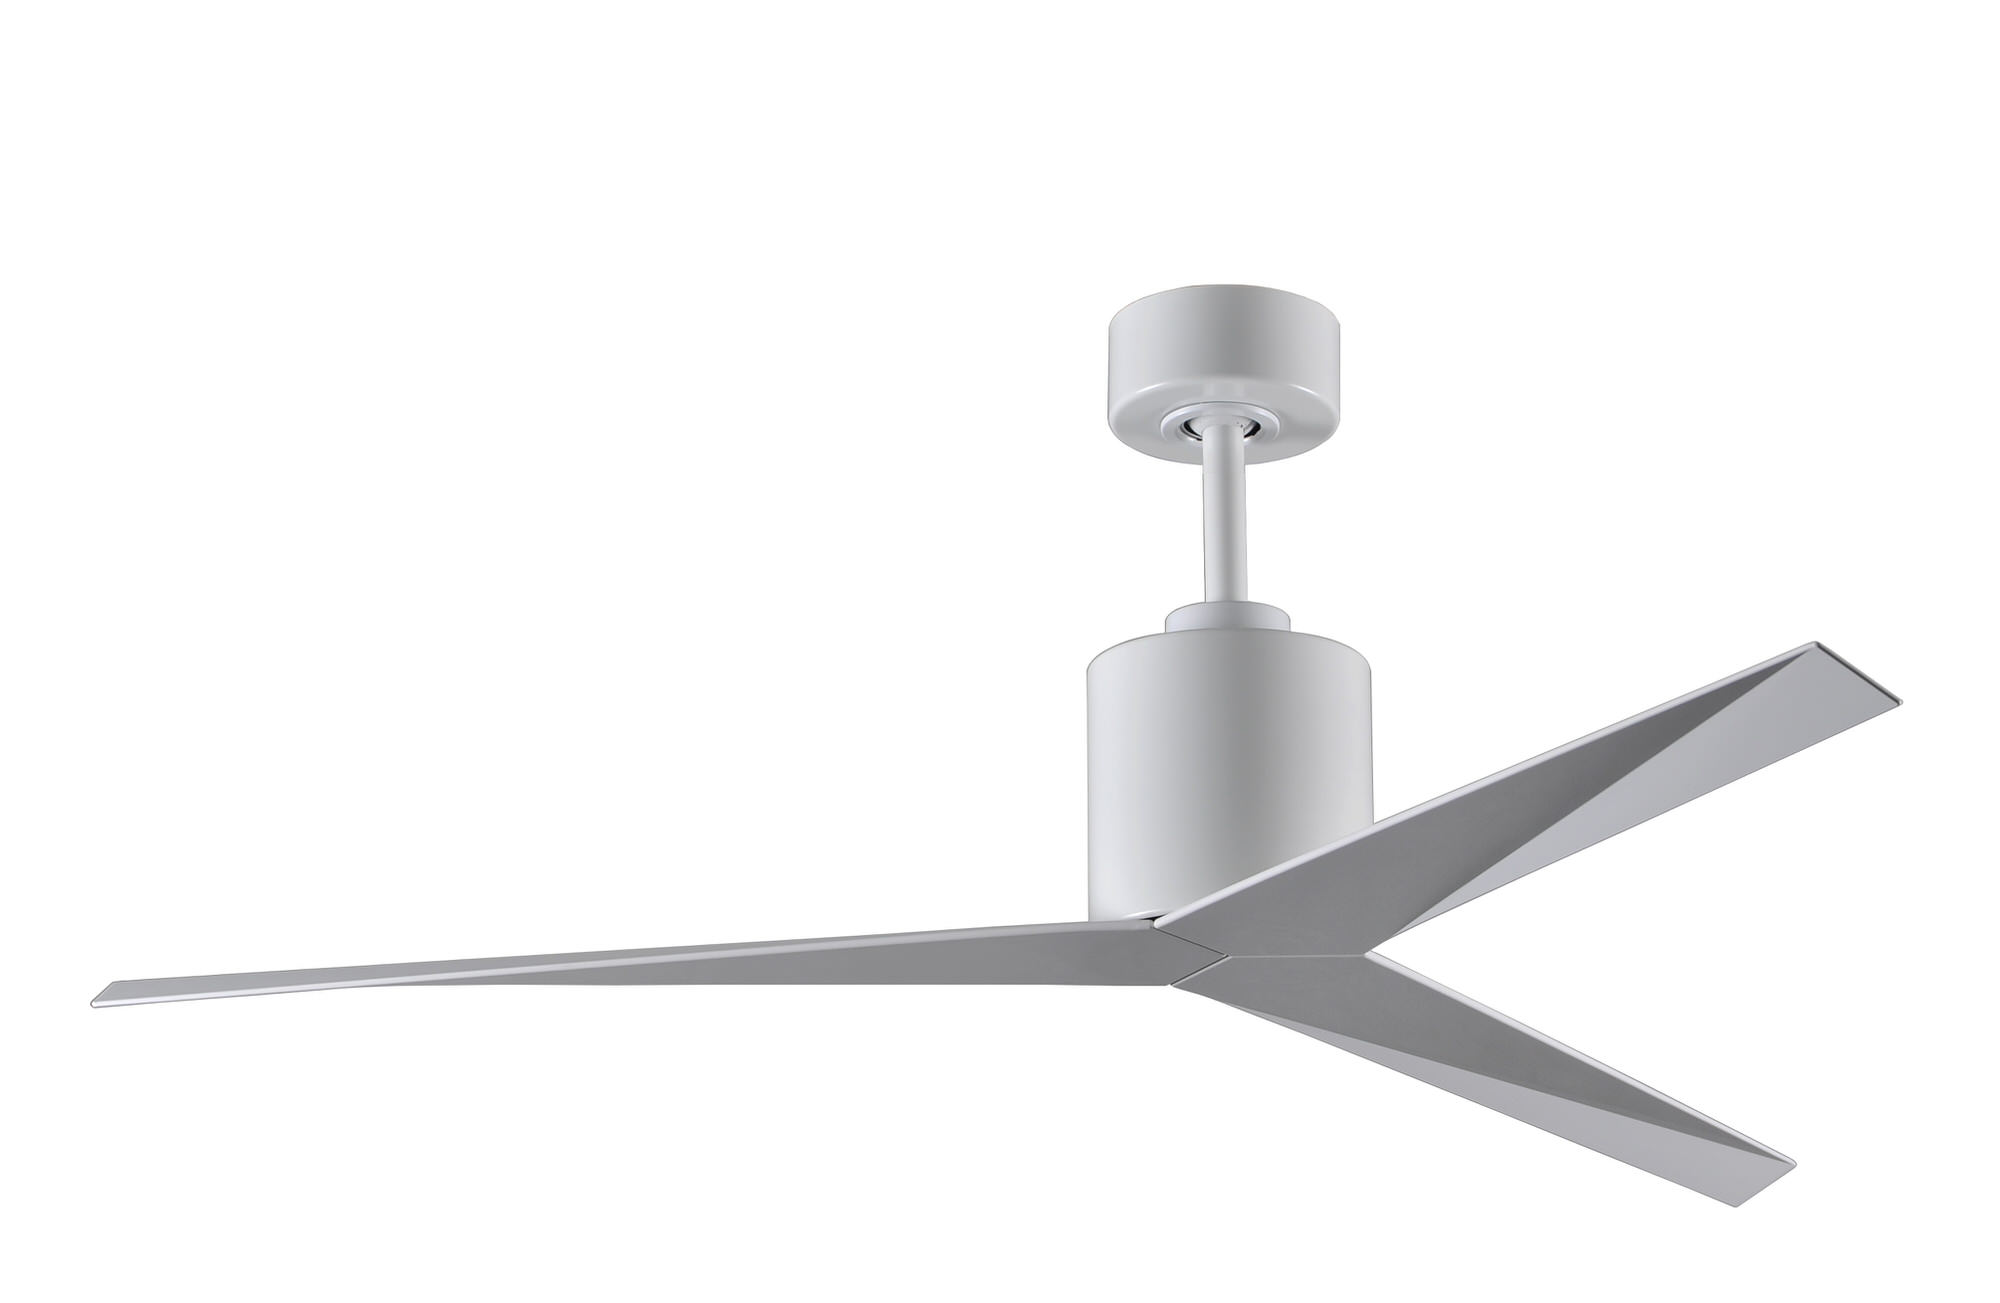 Matthews atlas eliza architects low energy dc ceiling fan aloadofball Images